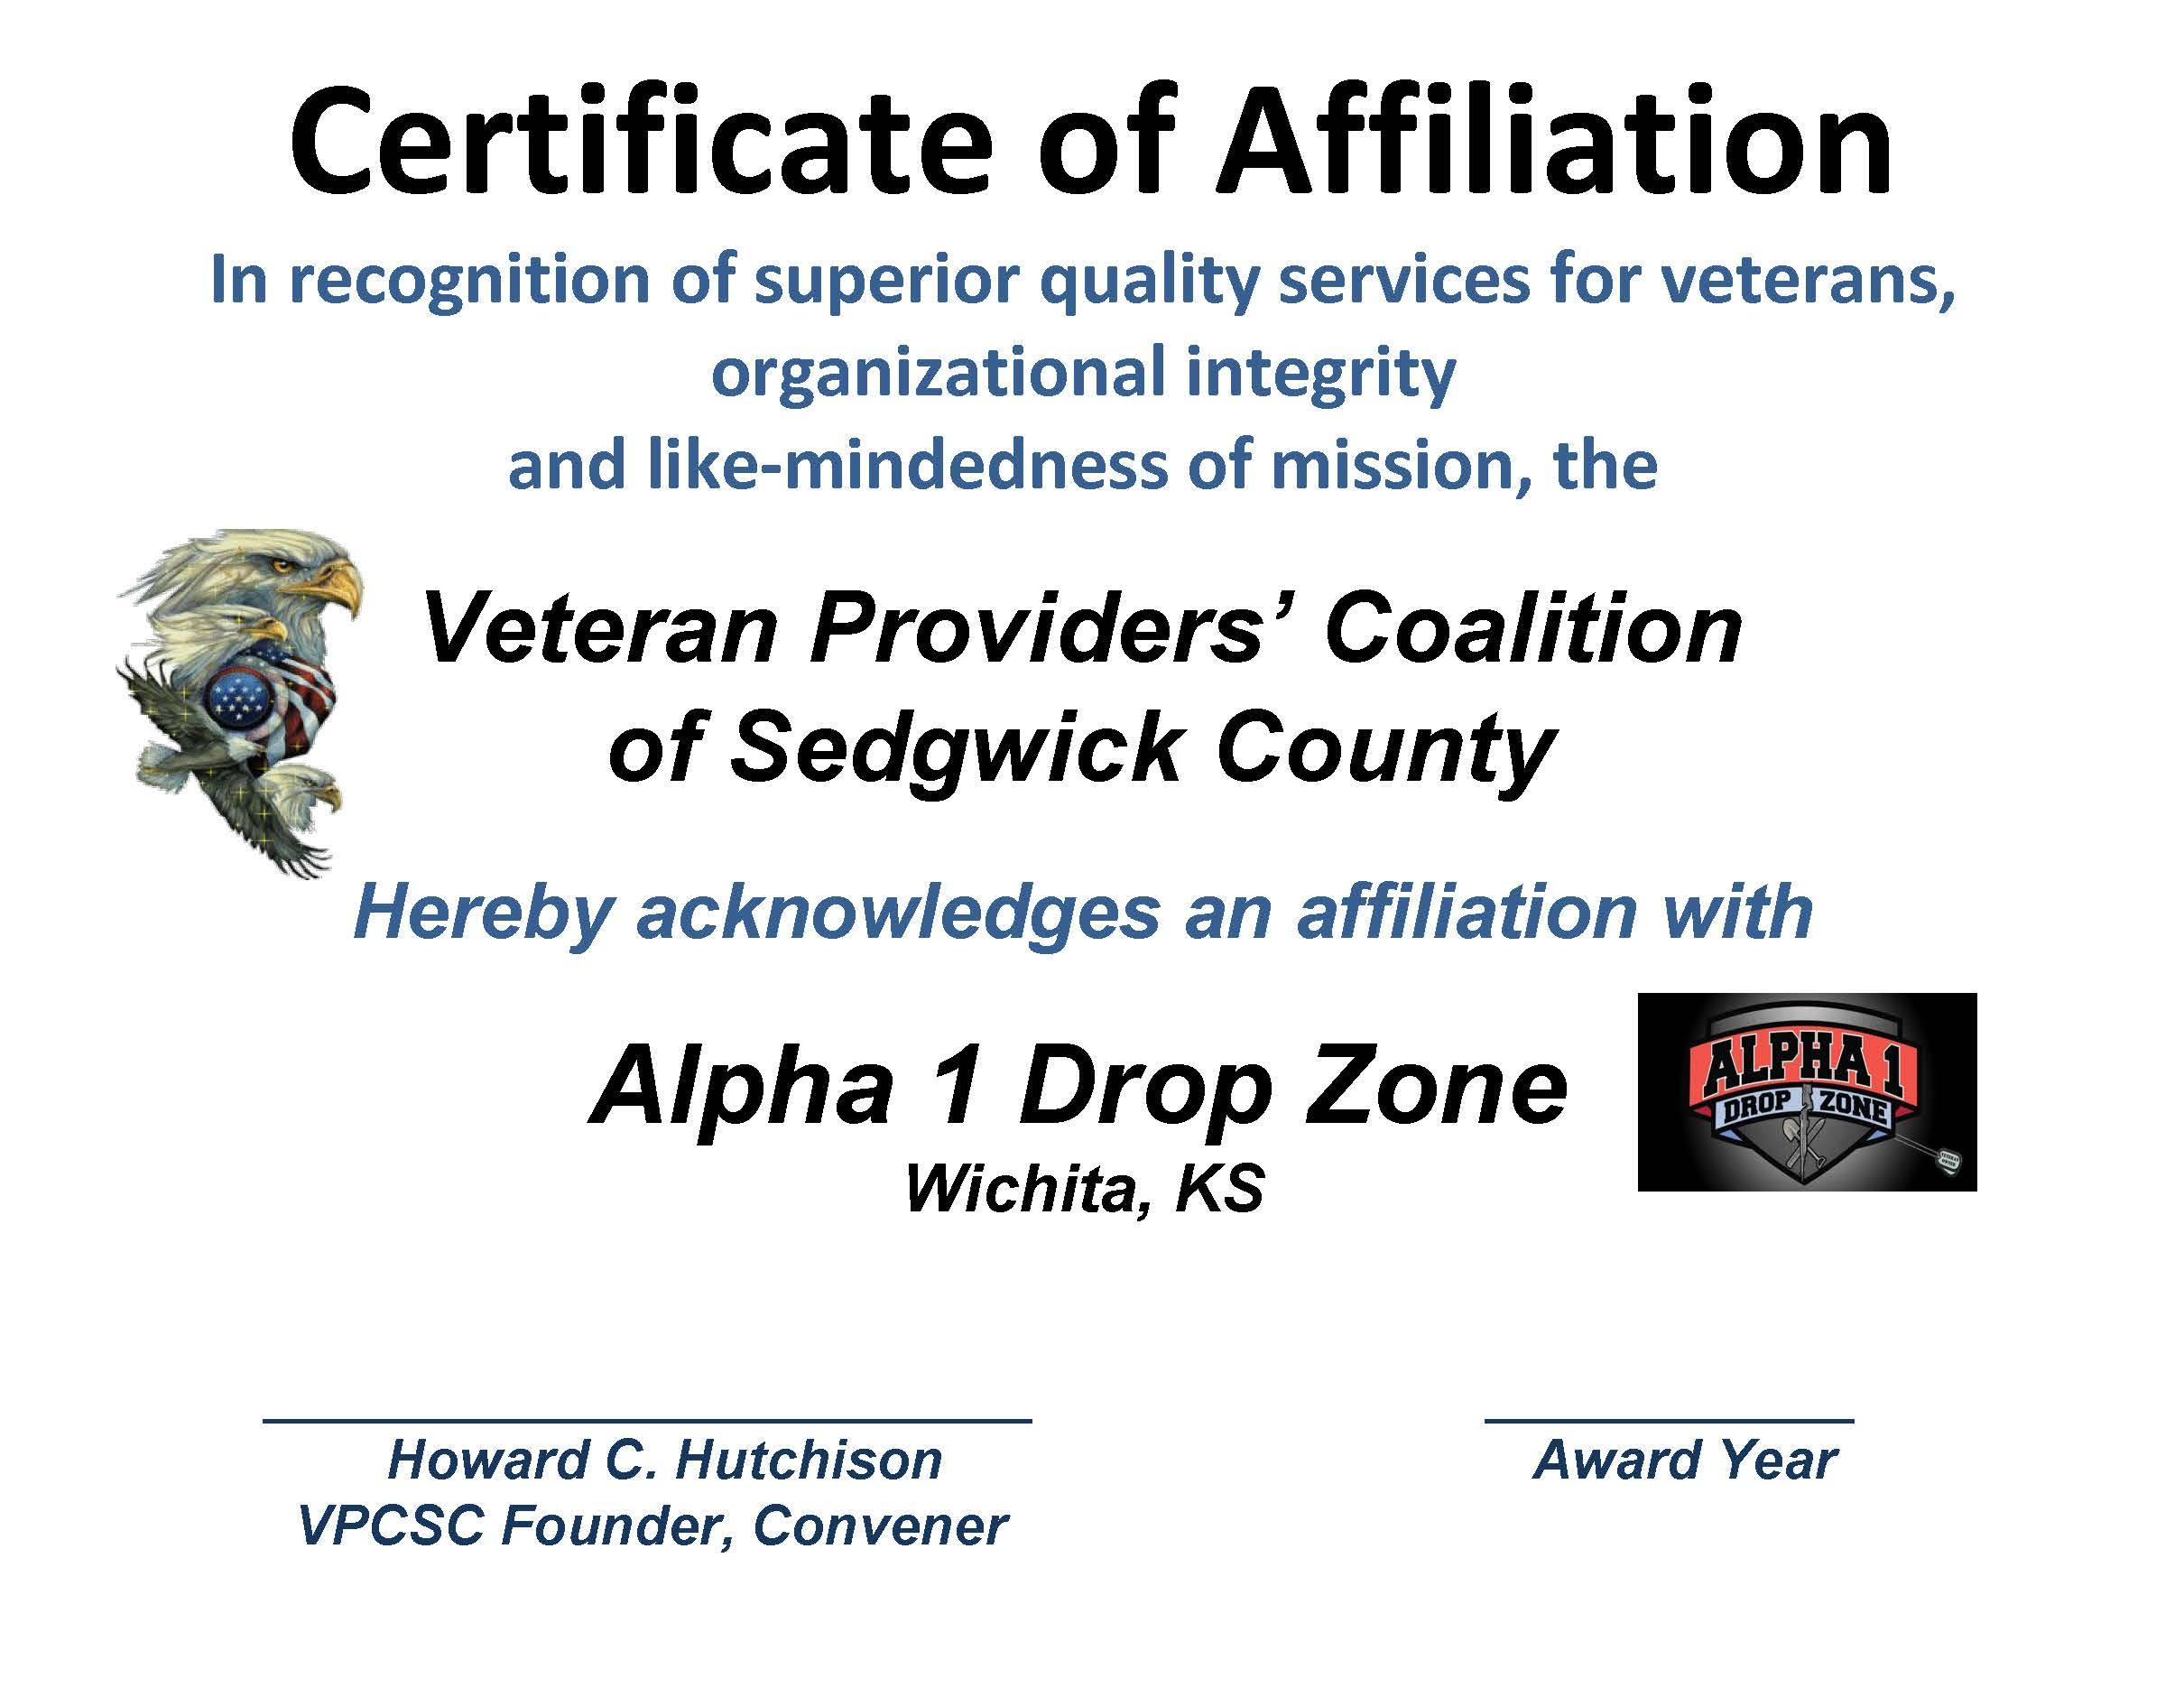 AFFILIATION CERT - ALPHA 1 DROP ZONE 2015